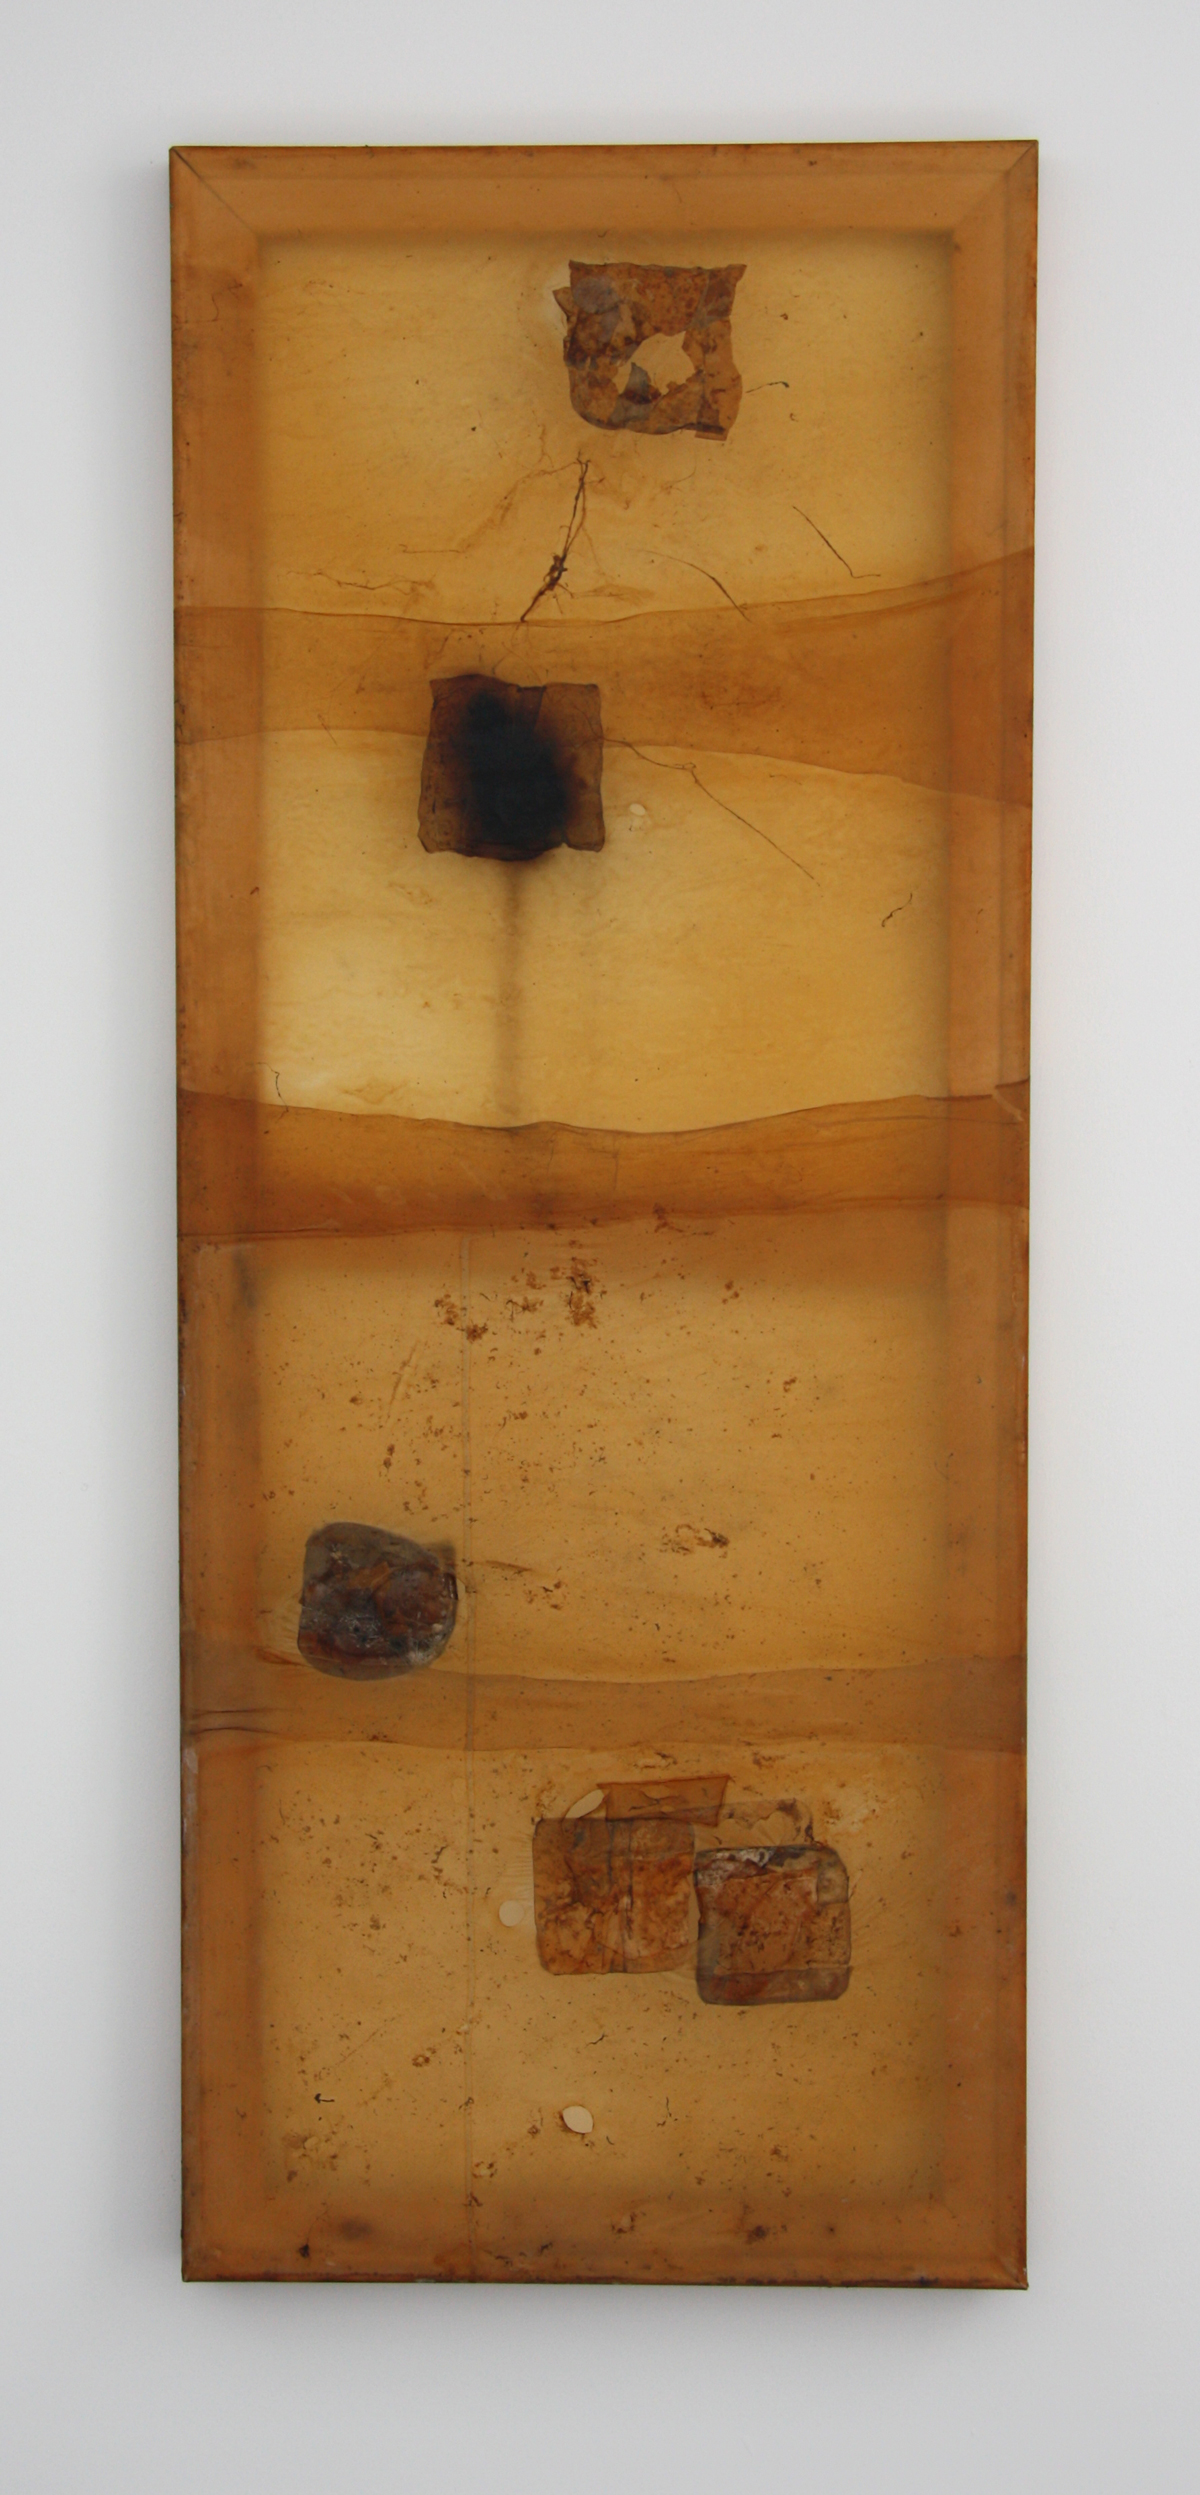 Mother (2016), Fiona Long, symbiotic culture of bacteria and yeasts, 50 x 160 cm